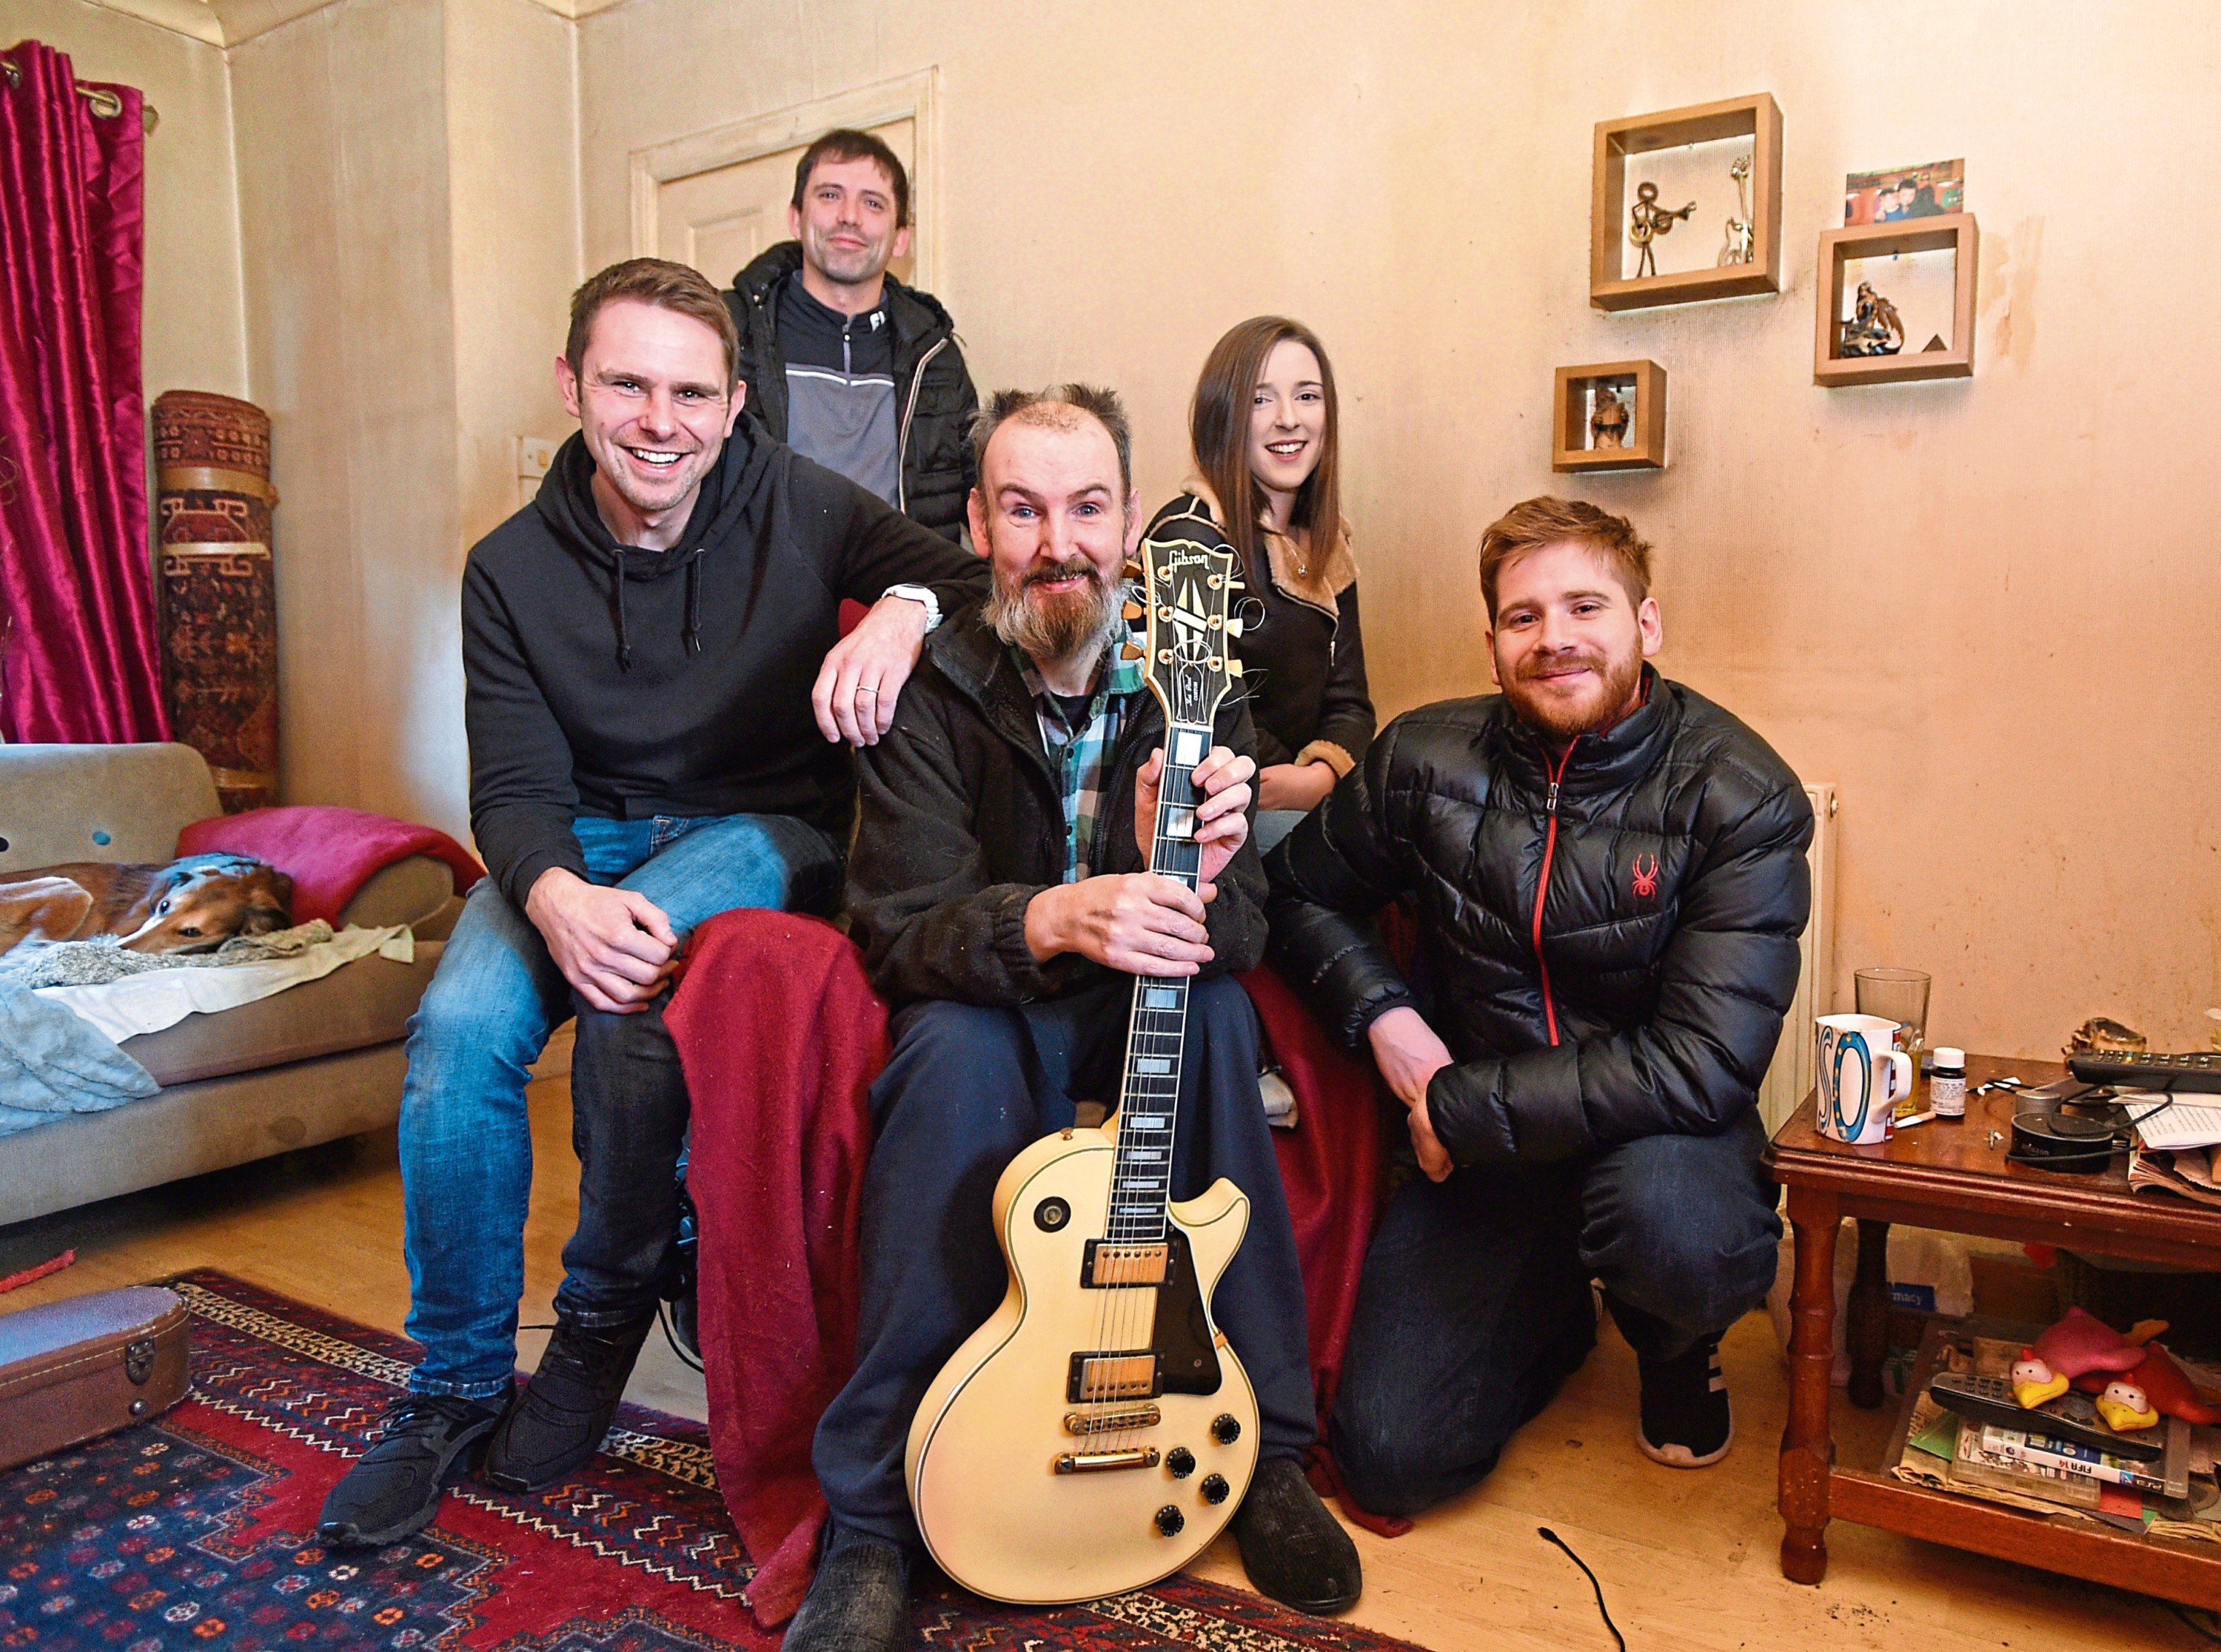 Sean McBain with the crew who will be filming a documentary on Beefy (Phil). From left, Sean McBain, Dean Ross, Phil (Beefy), Lauren McAllan and Kyle Rennie